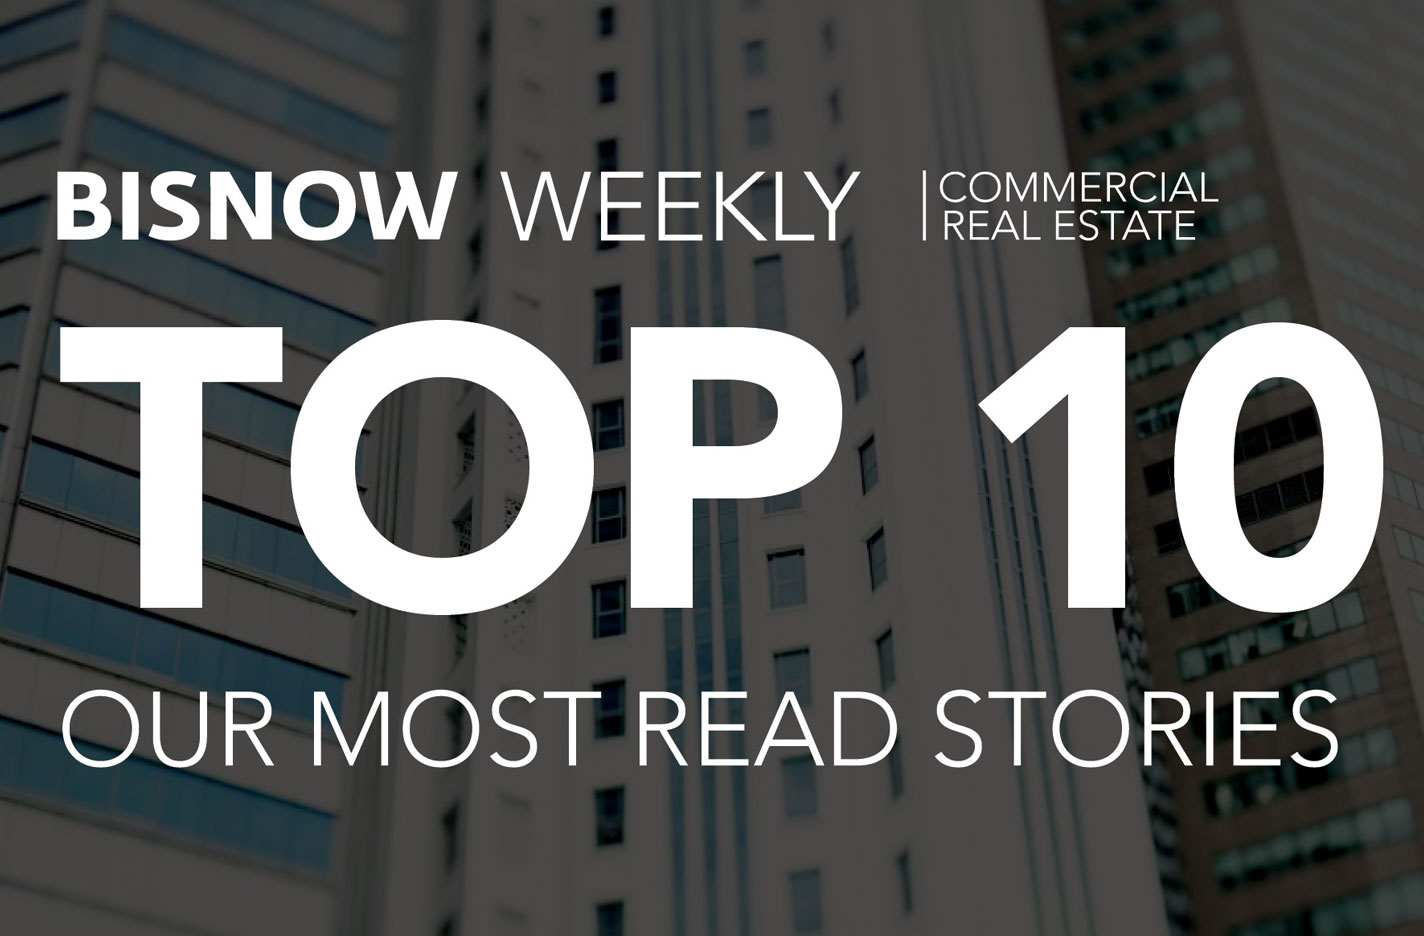 Top 10 Most Popular Commercial Real Estate Stories This Week